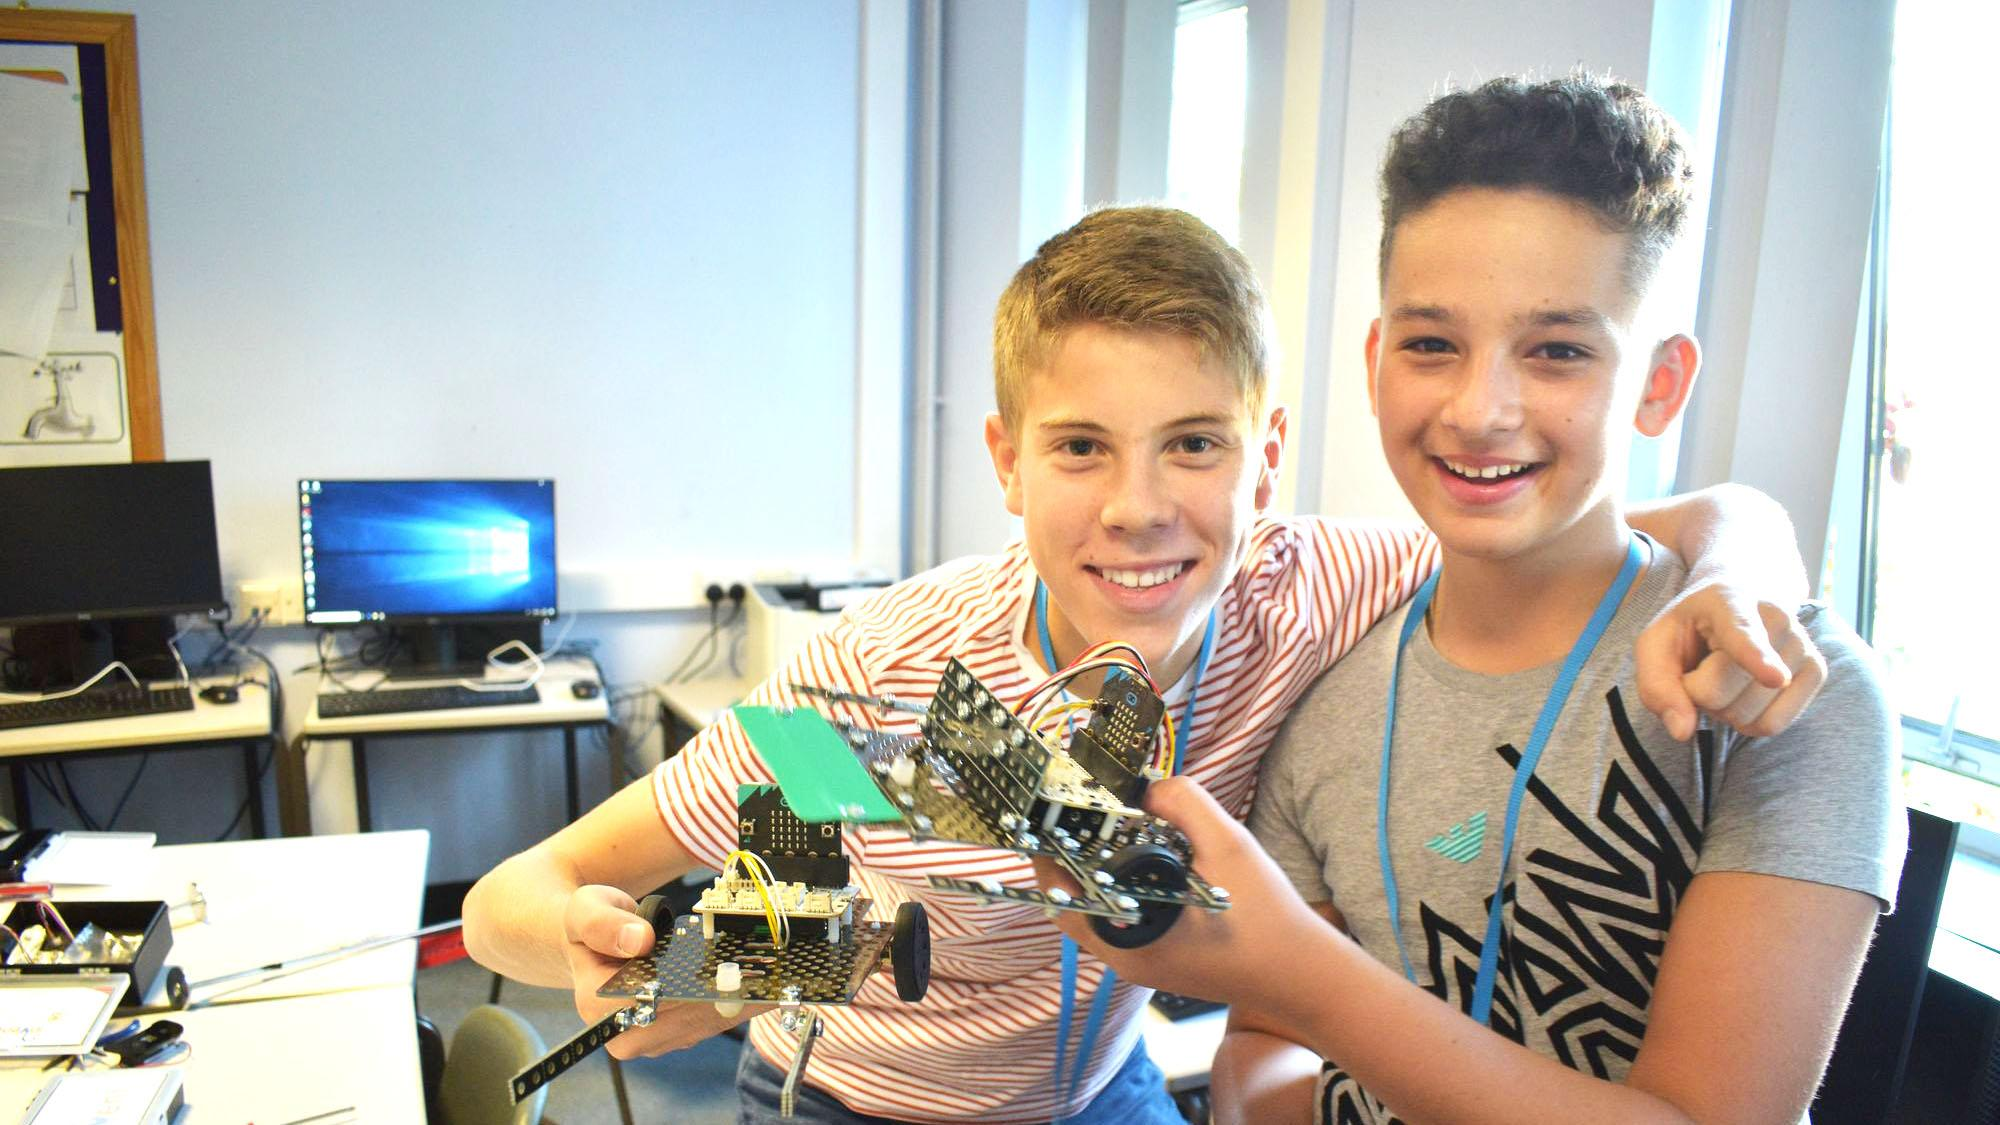 Boys doing robotics